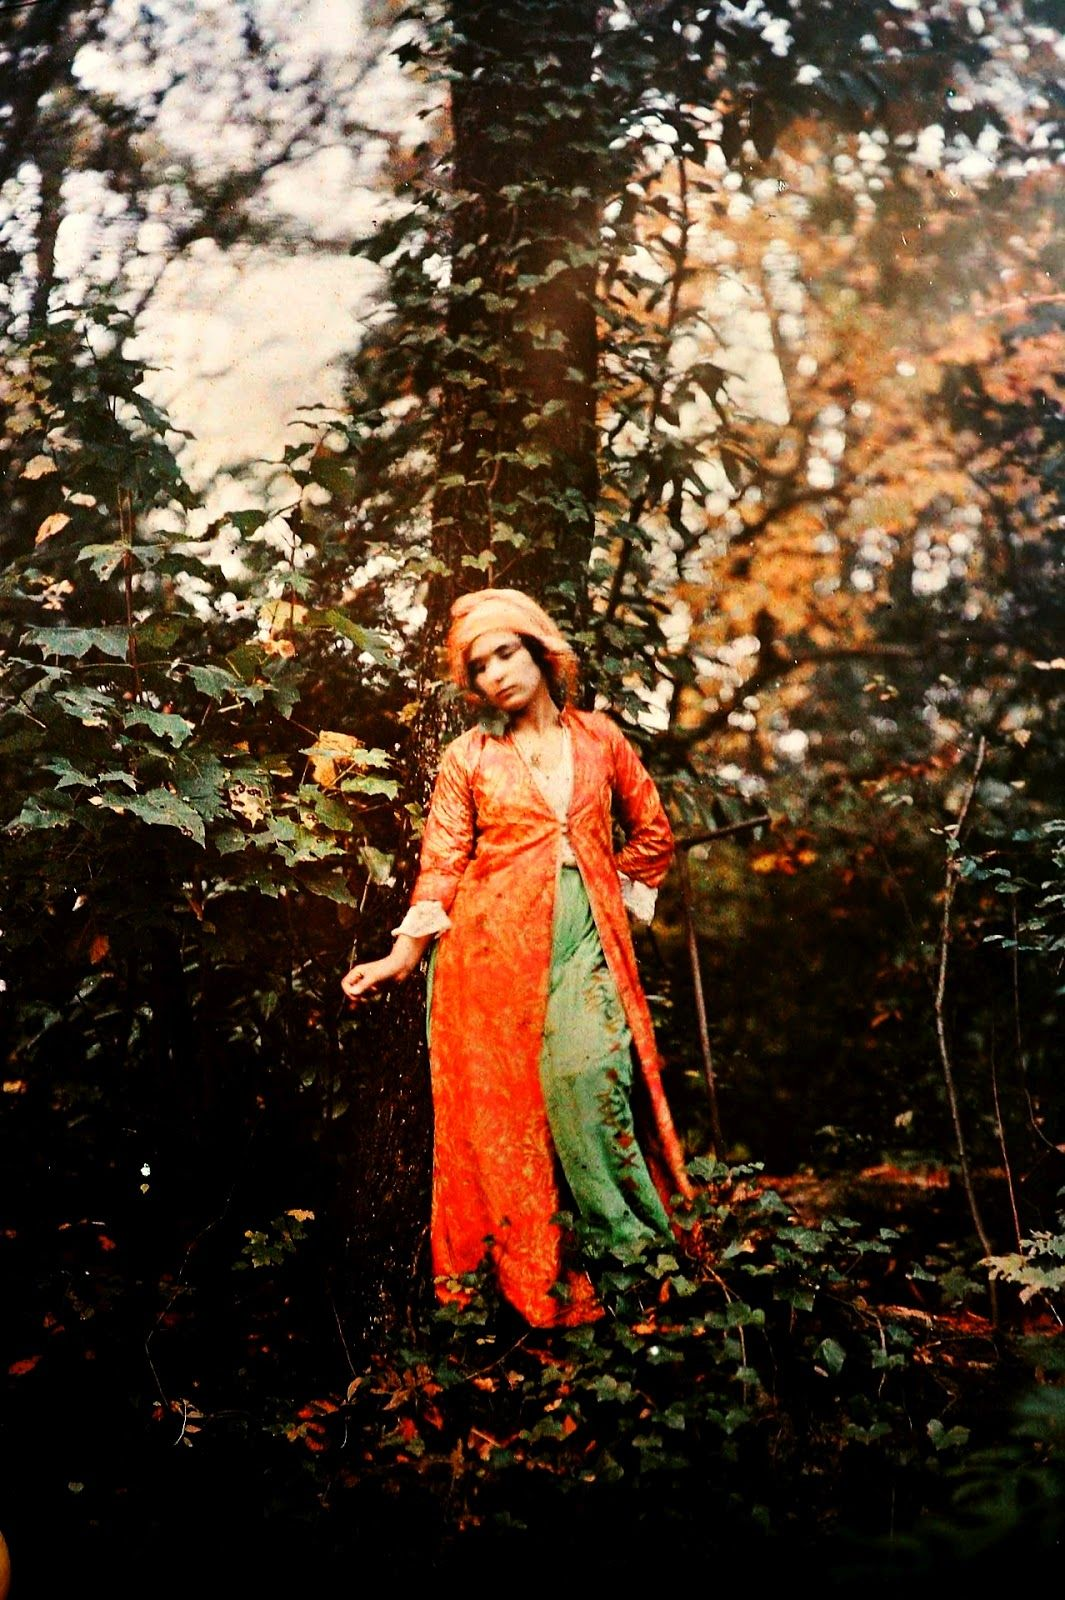 Women in Autochrome – Breathtaking Color Portrait Photos of Women in the Early 20th Century